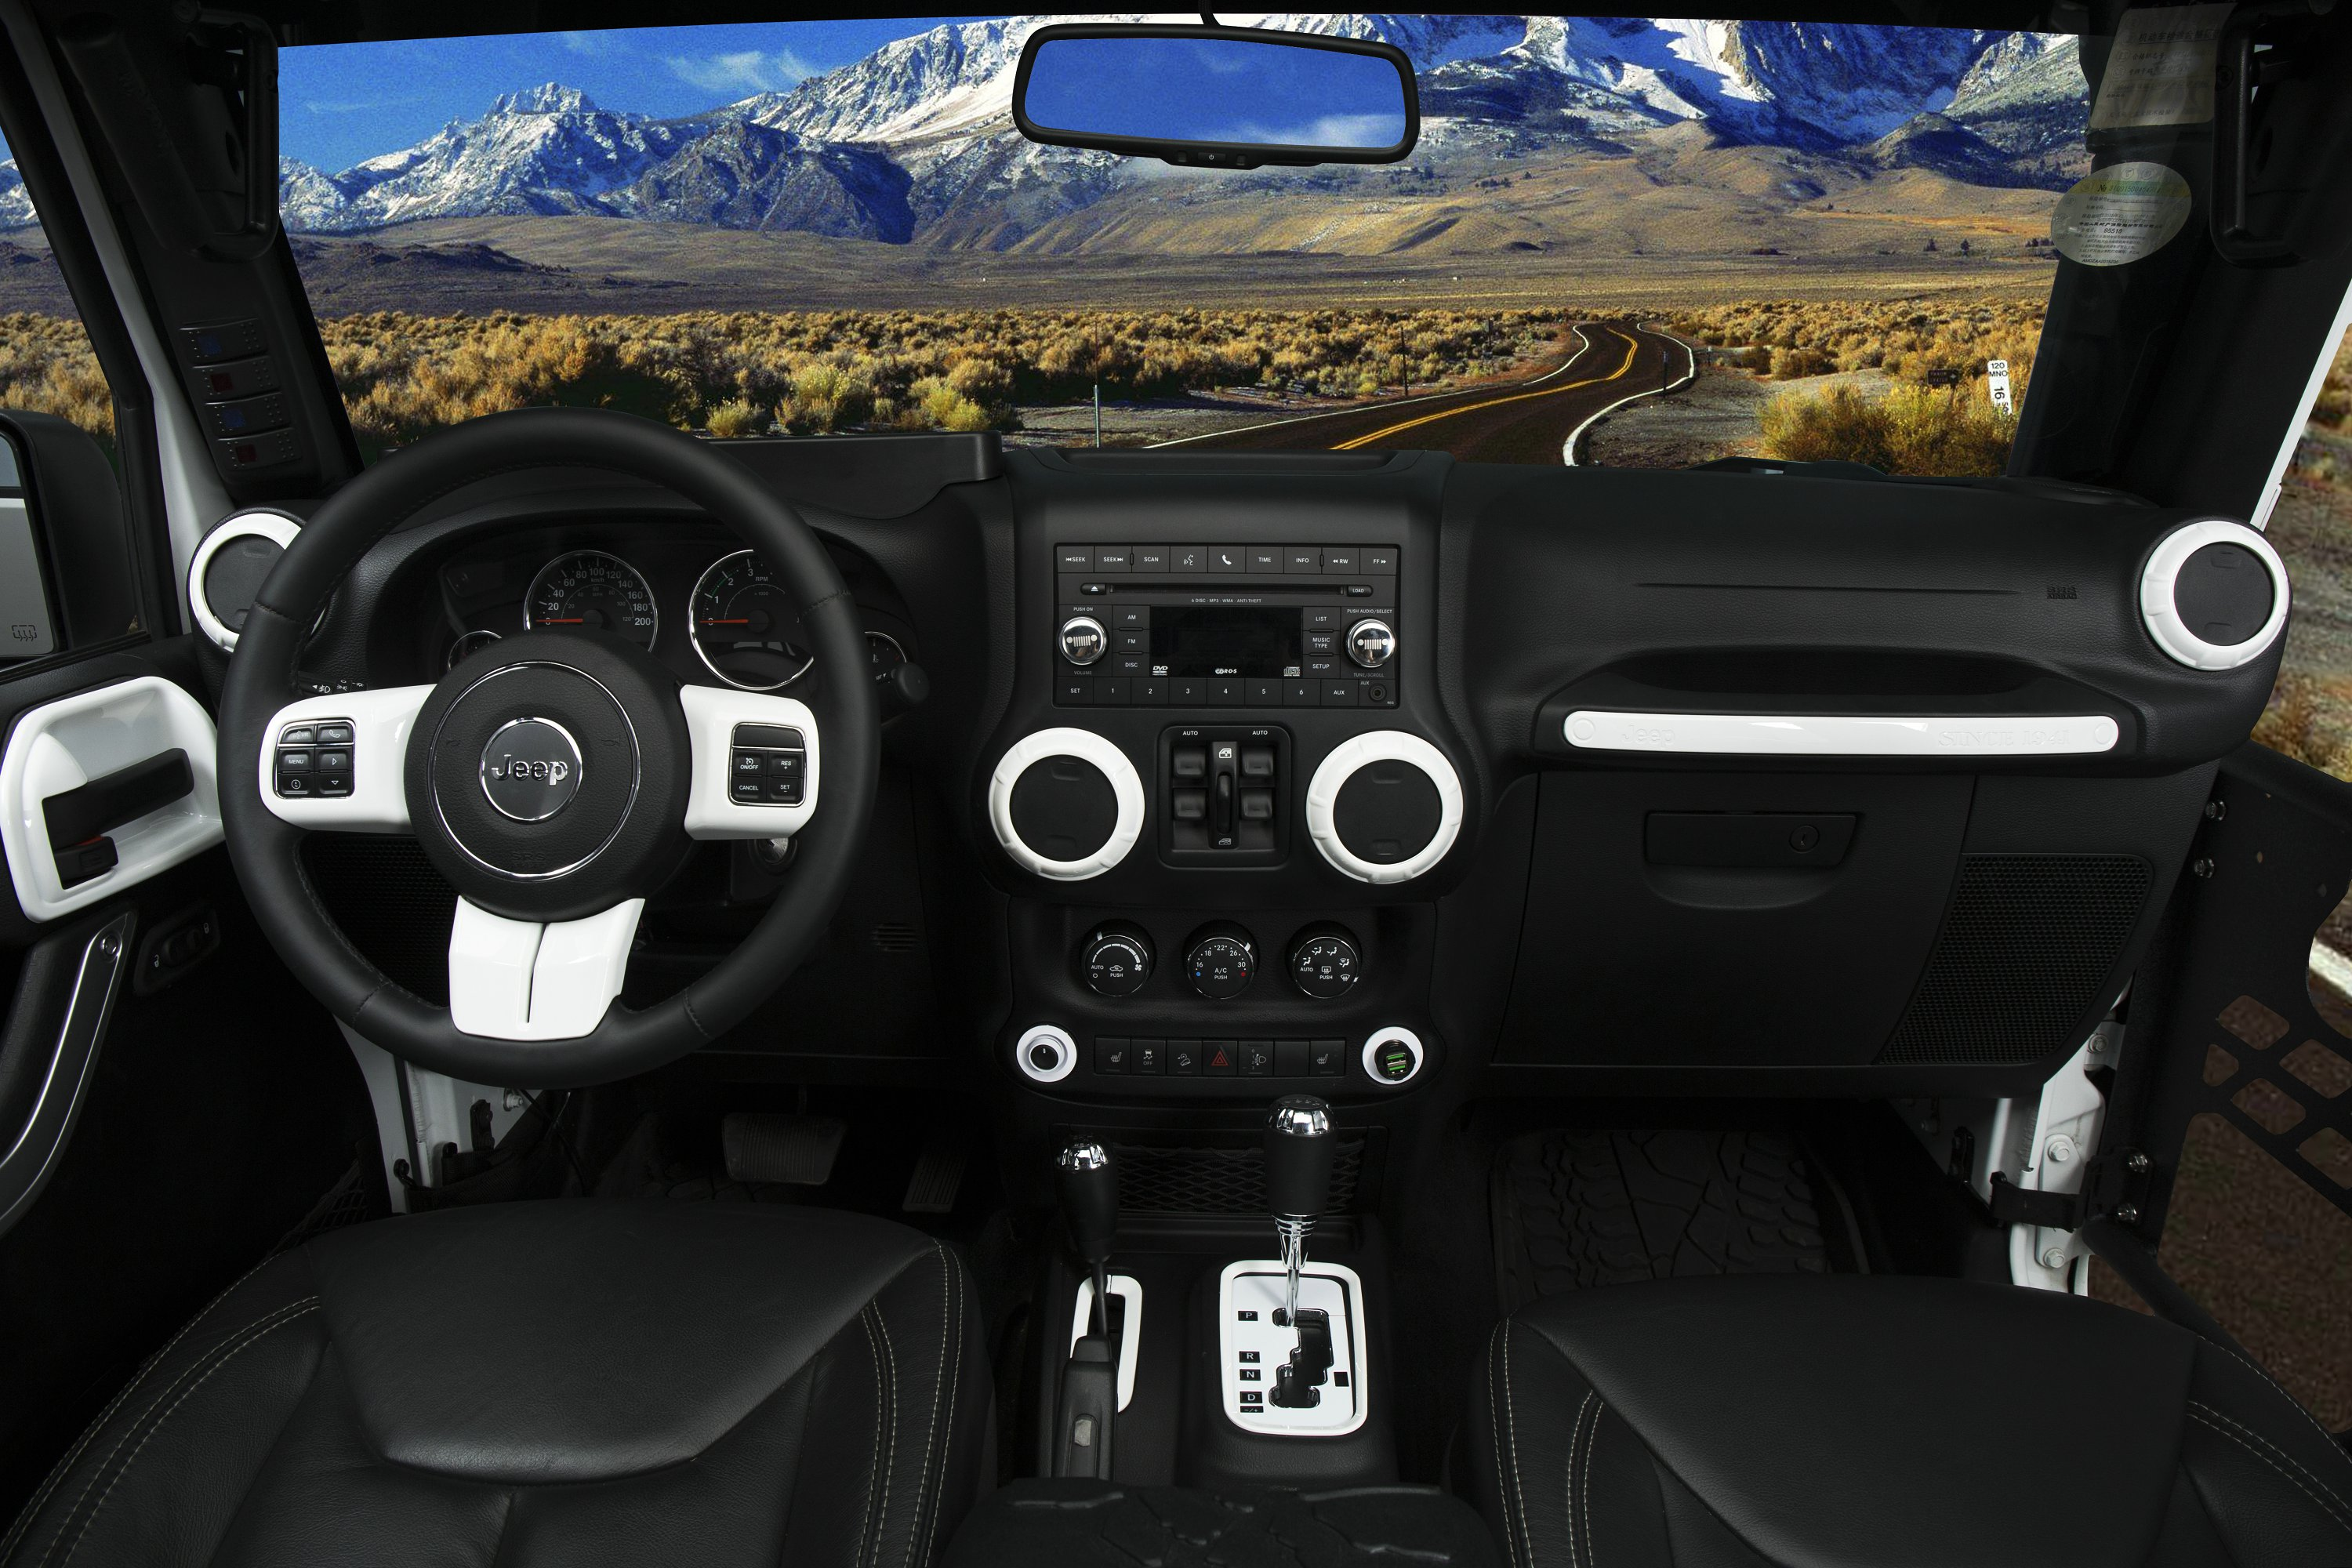 jeep wrangler interior trim kit. Black Bedroom Furniture Sets. Home Design Ideas